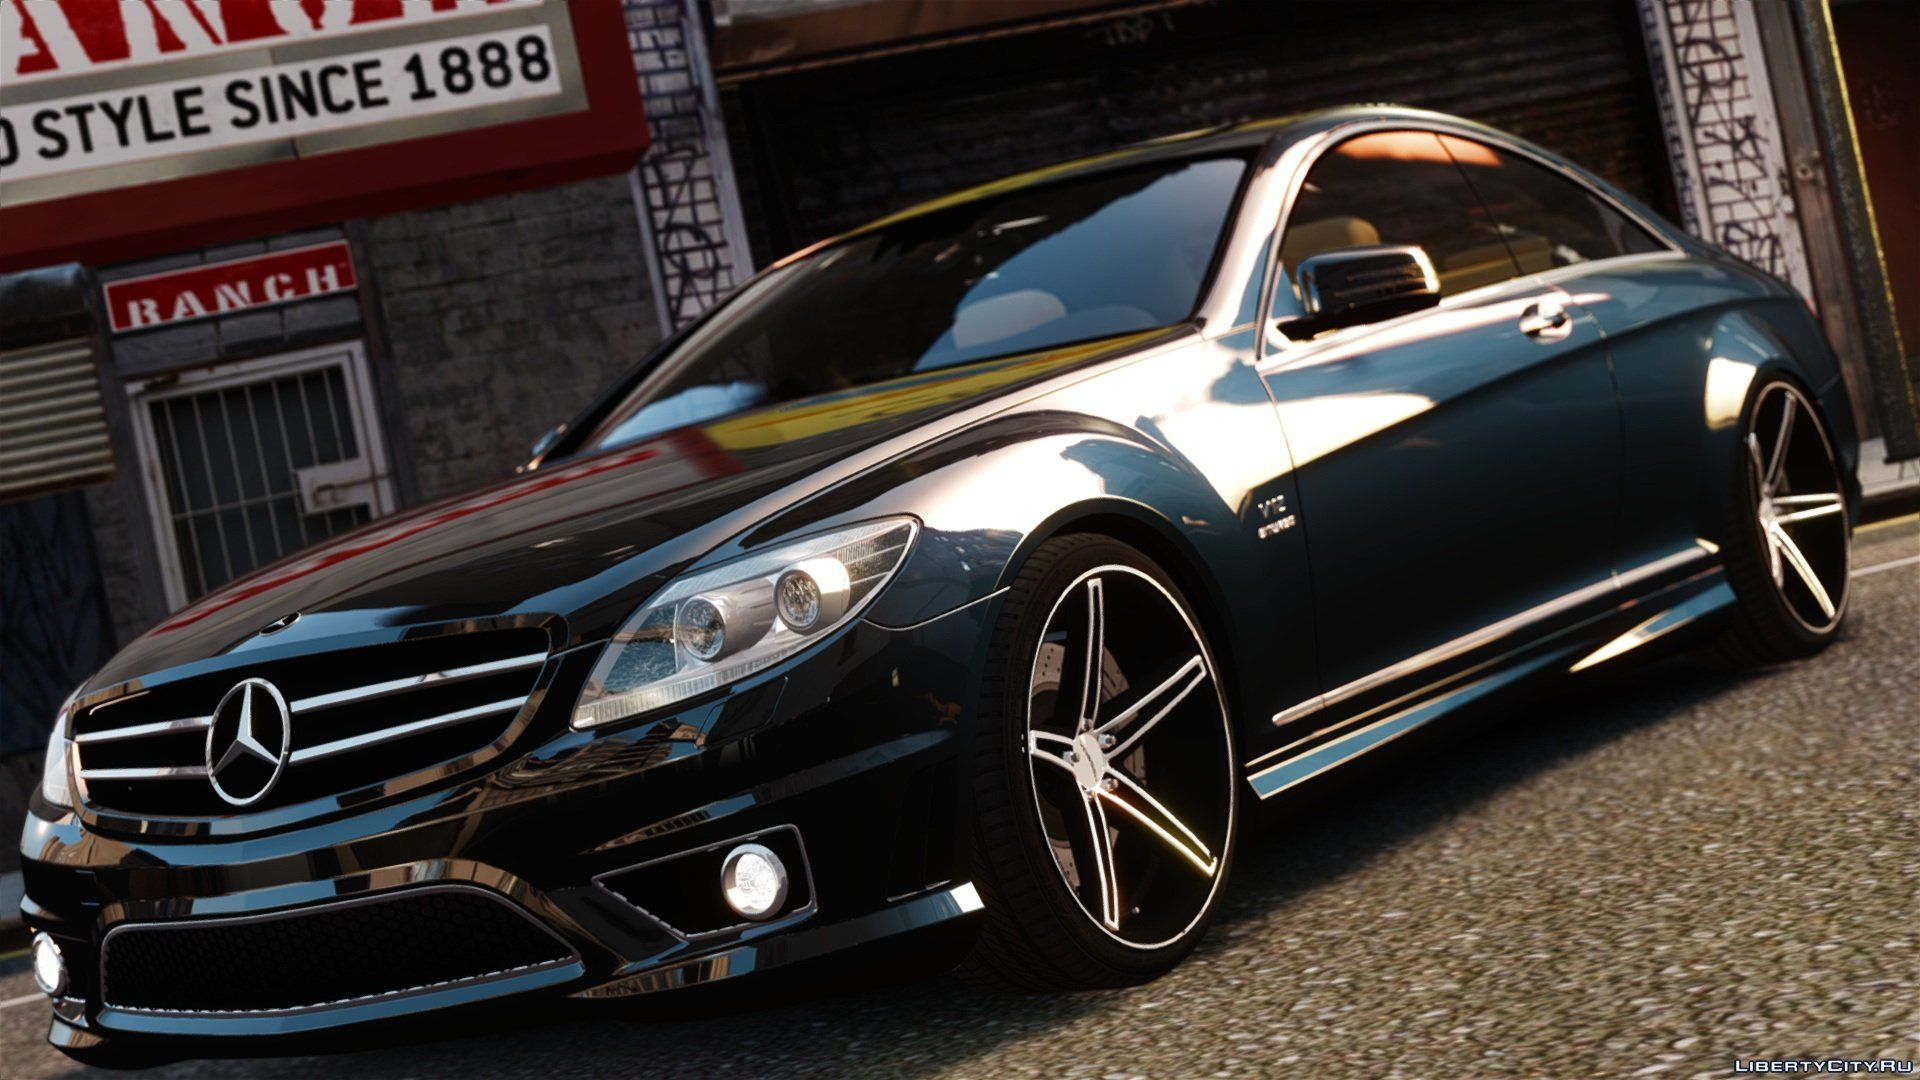 mercedes benz cl 65 amg v2 0 by daniel 555 gta 4